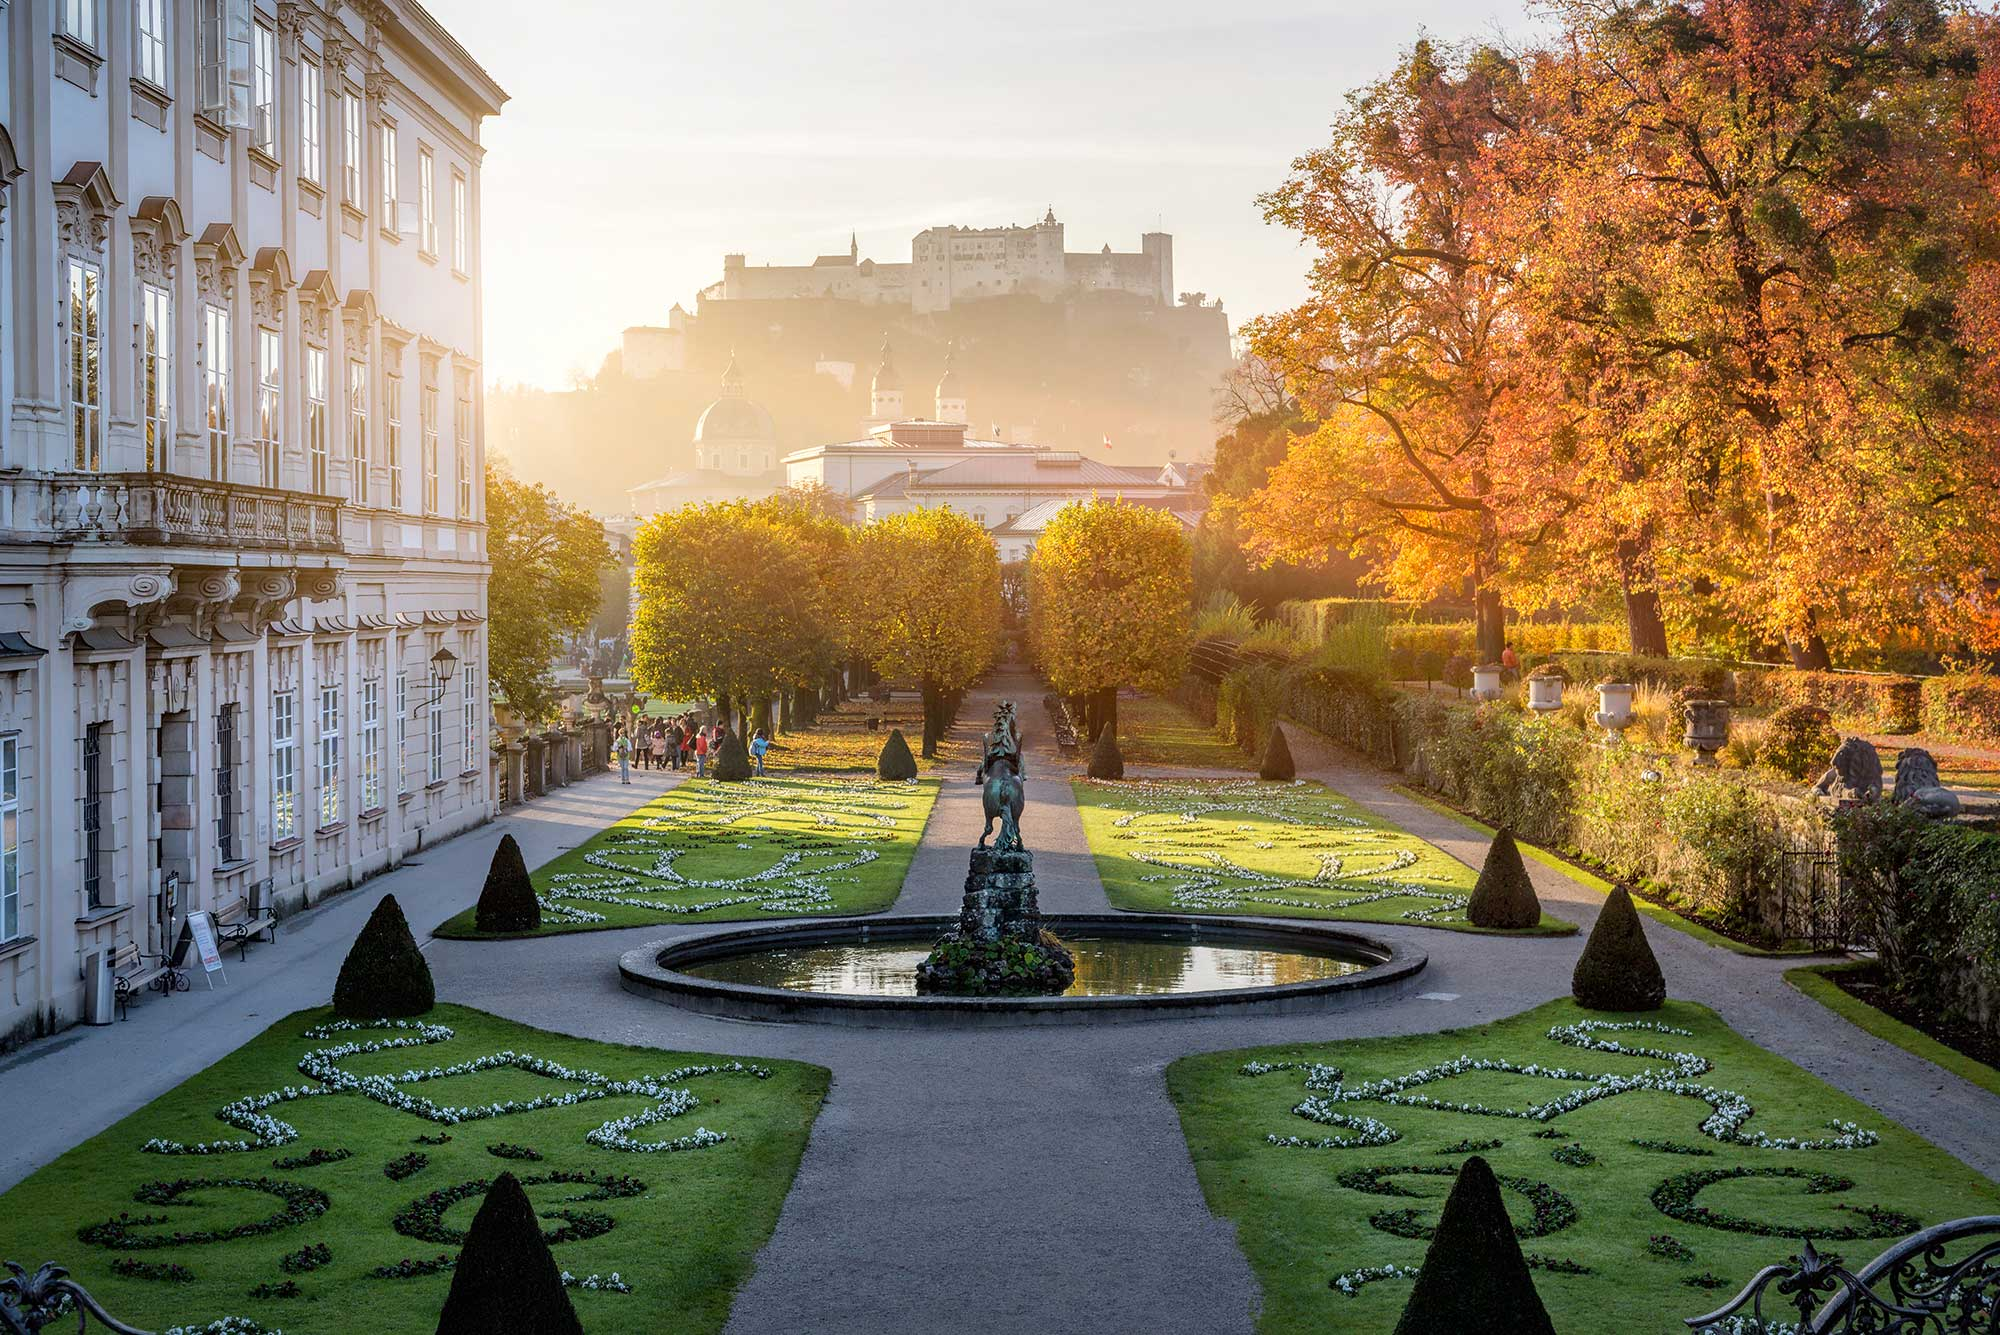 The gardens of Mirabell Palace and Hohensalzburg Fortress in the distance at sunrise.